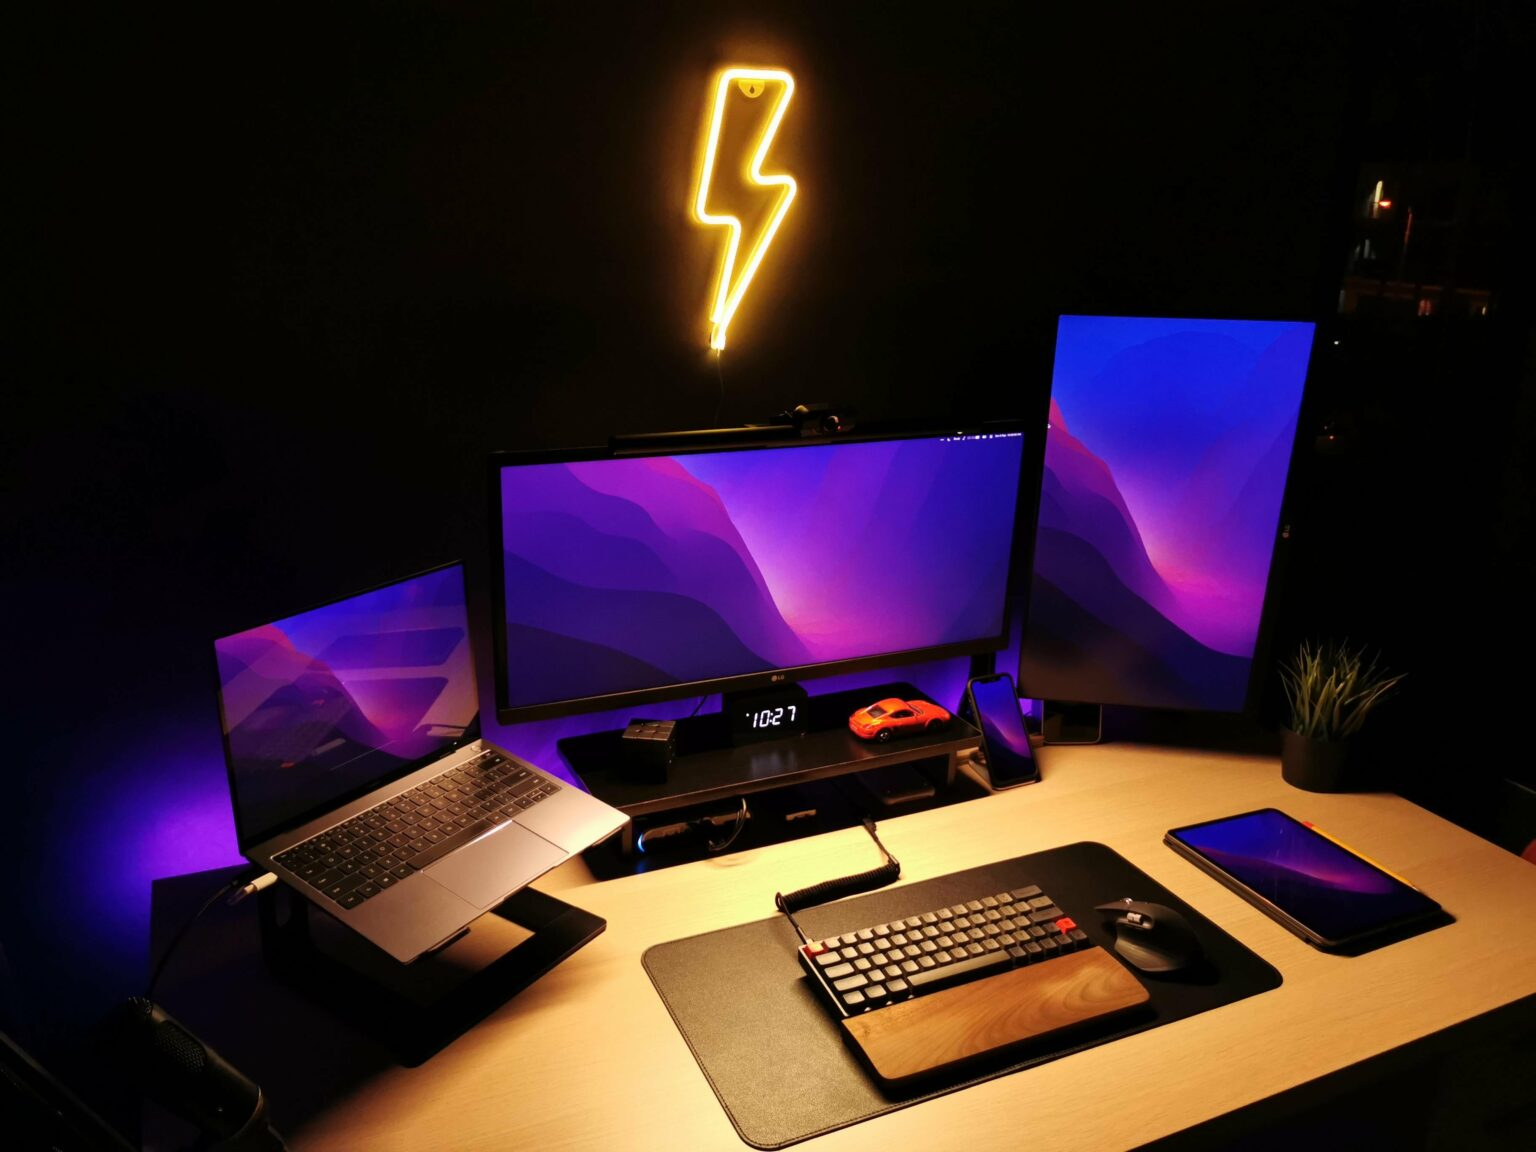 A Hackintosh forms the core of this three-display setup.